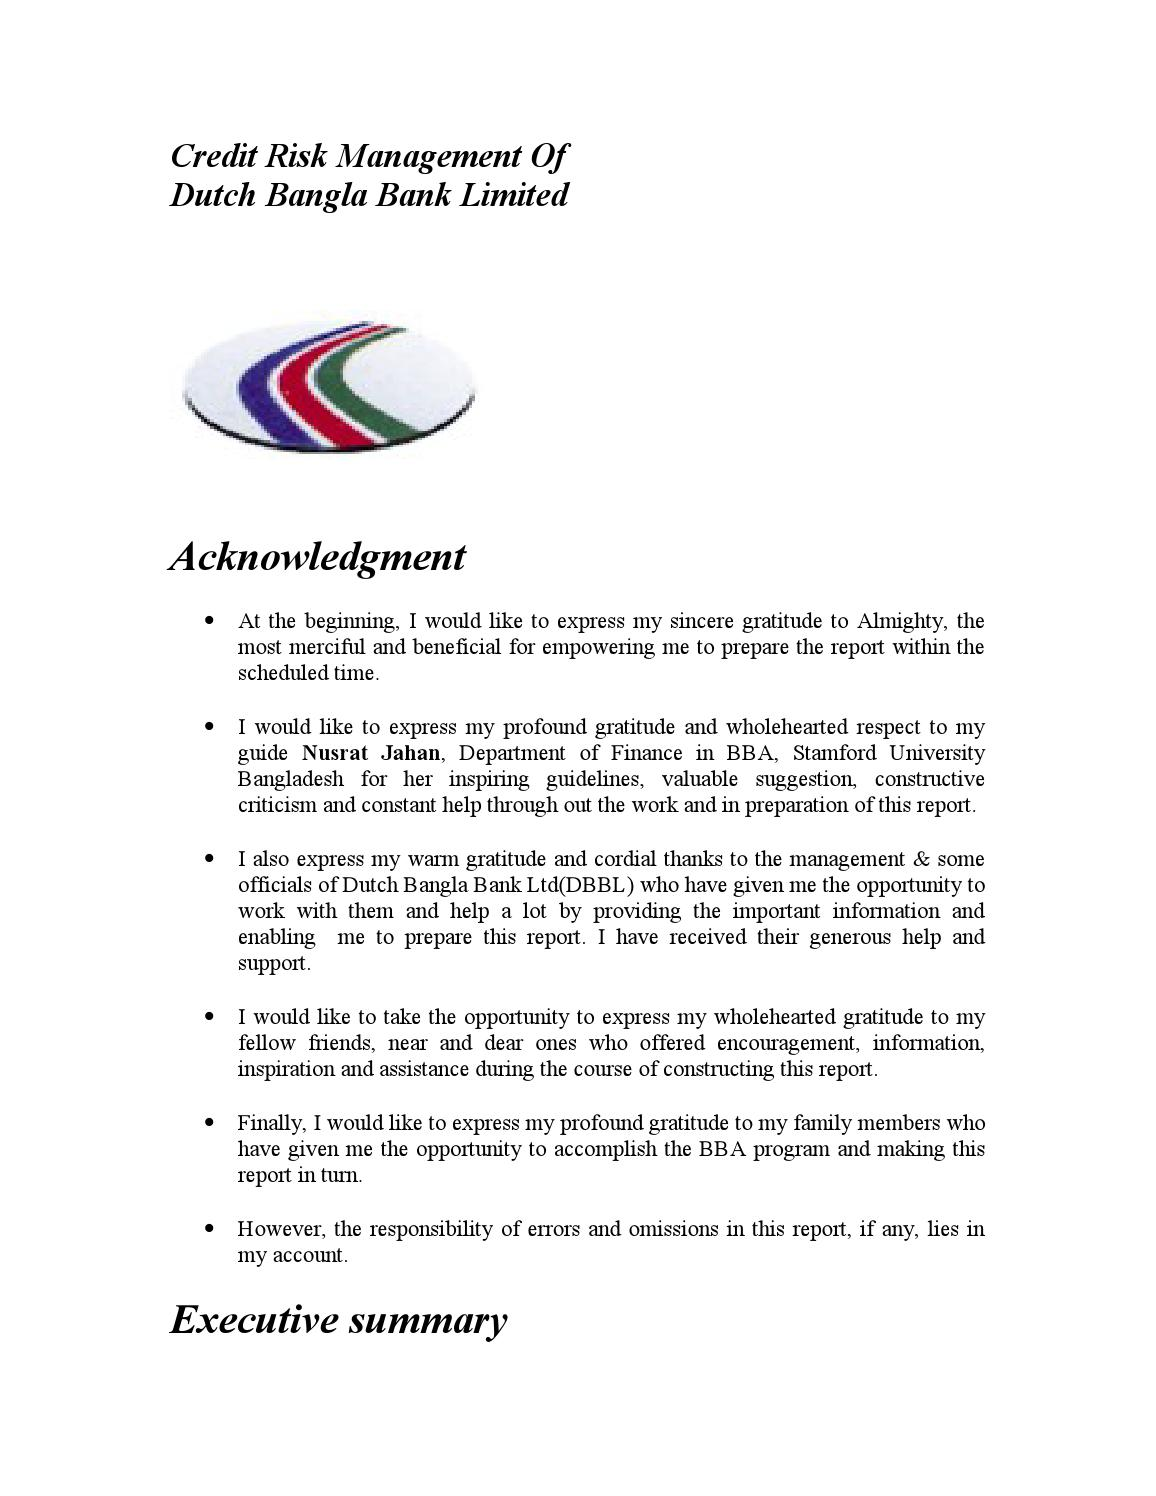 Cover letter for banks image collections cover letter sample credit risk management of dutch bangla bank limited by lawjuris credit risk management of dutch bangla yadclub Images